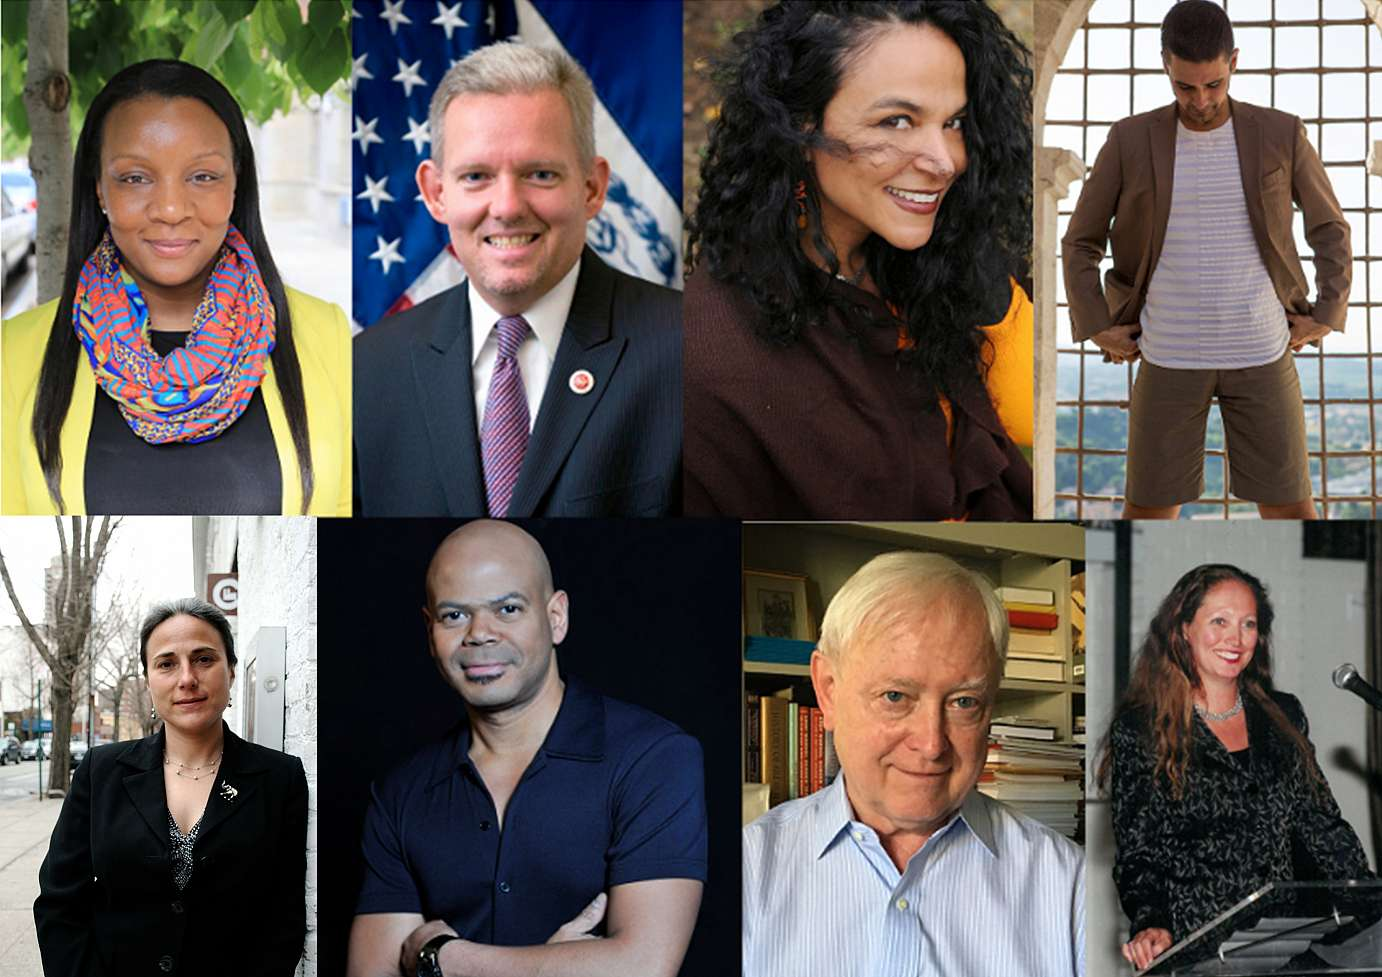 Images of keynote speakers and panelists: Jimmy Van Bramer, Jonah Bokaer, Gabri Christa, Simon Eccleston, Sheila Lewandowski, and Linda Shelton